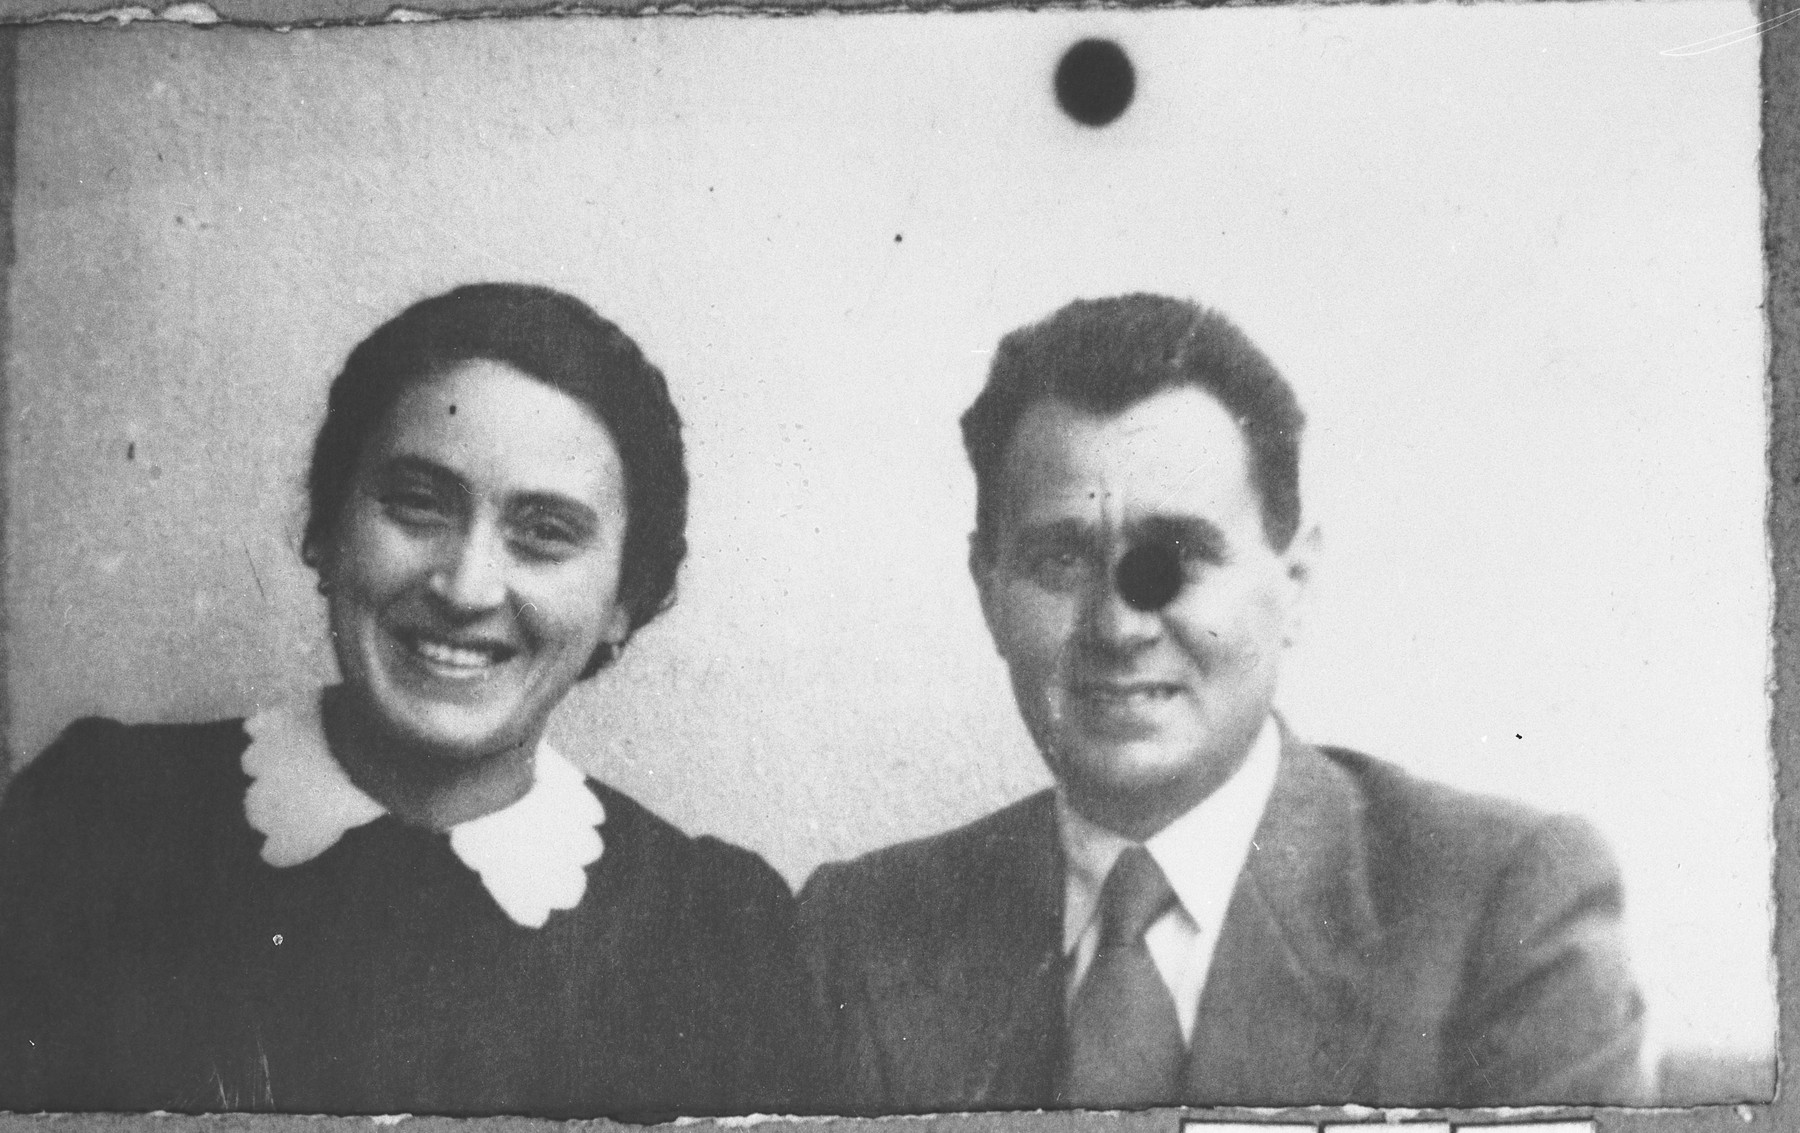 Portrait of Mois Kamchi, son of Solomon Kamchi, and Mois' wife, Luna.  Mois was an auto dealer.  They lived at Karagoryeva 107 in Bitola.